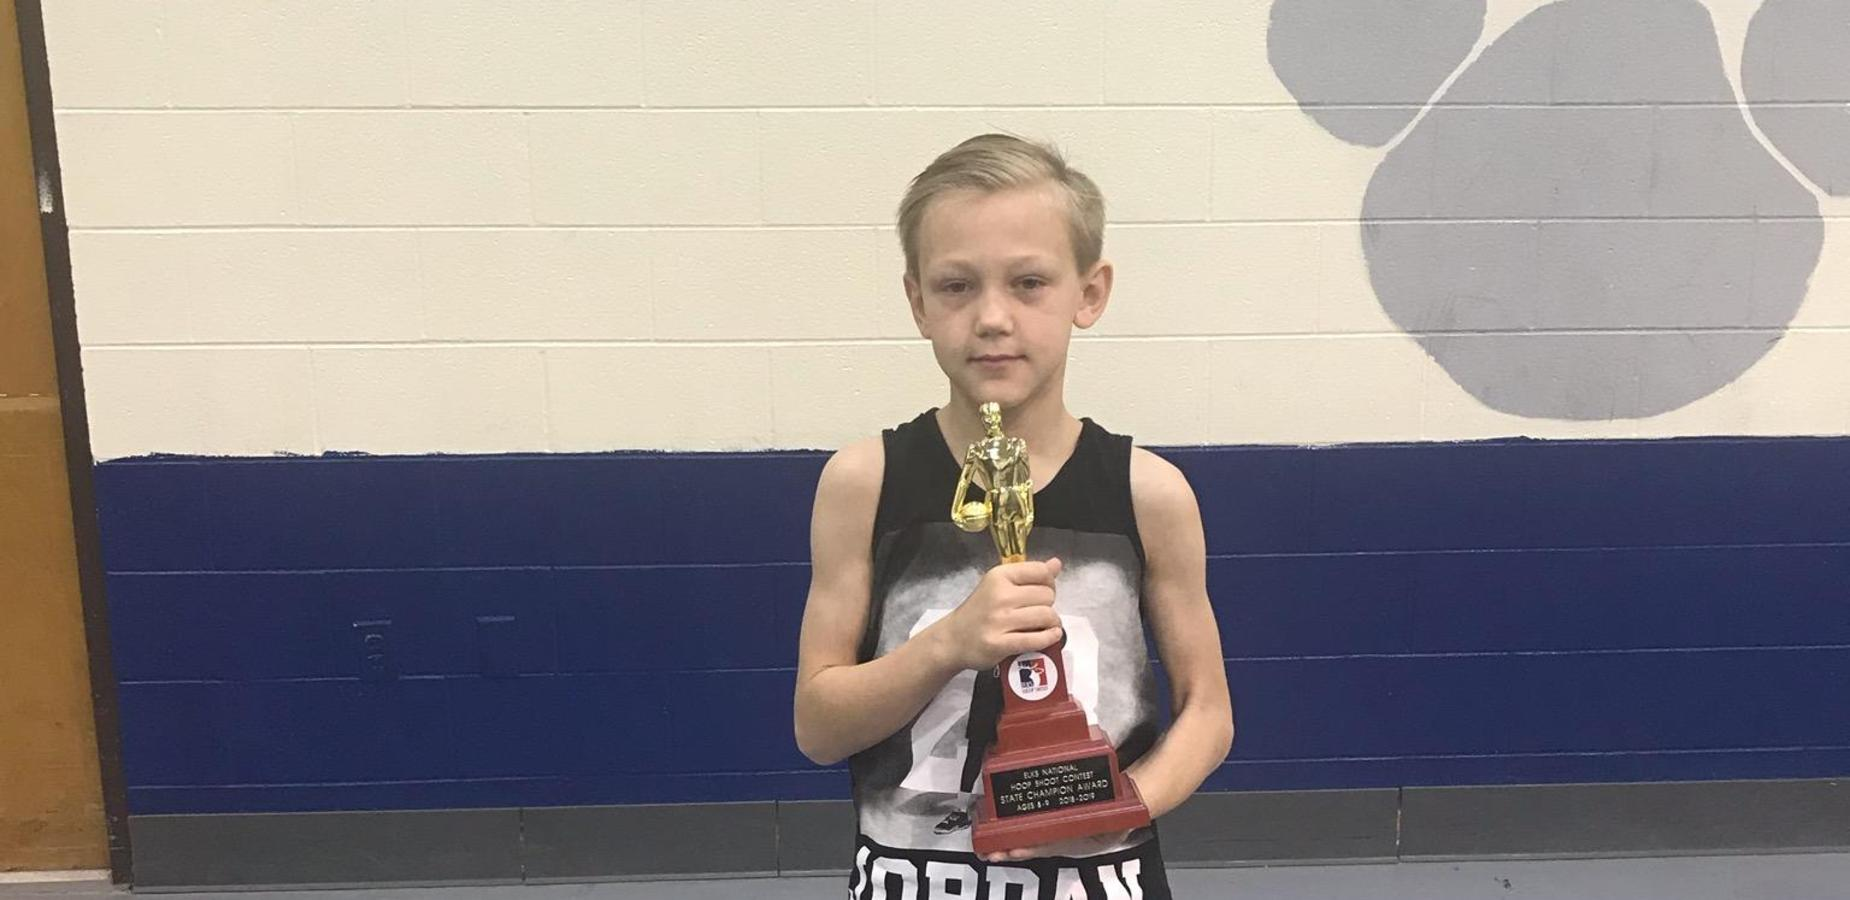 Aiden McCalmon wins the Elks Hoop Shoot State Competition in Ocean Springs, MS.